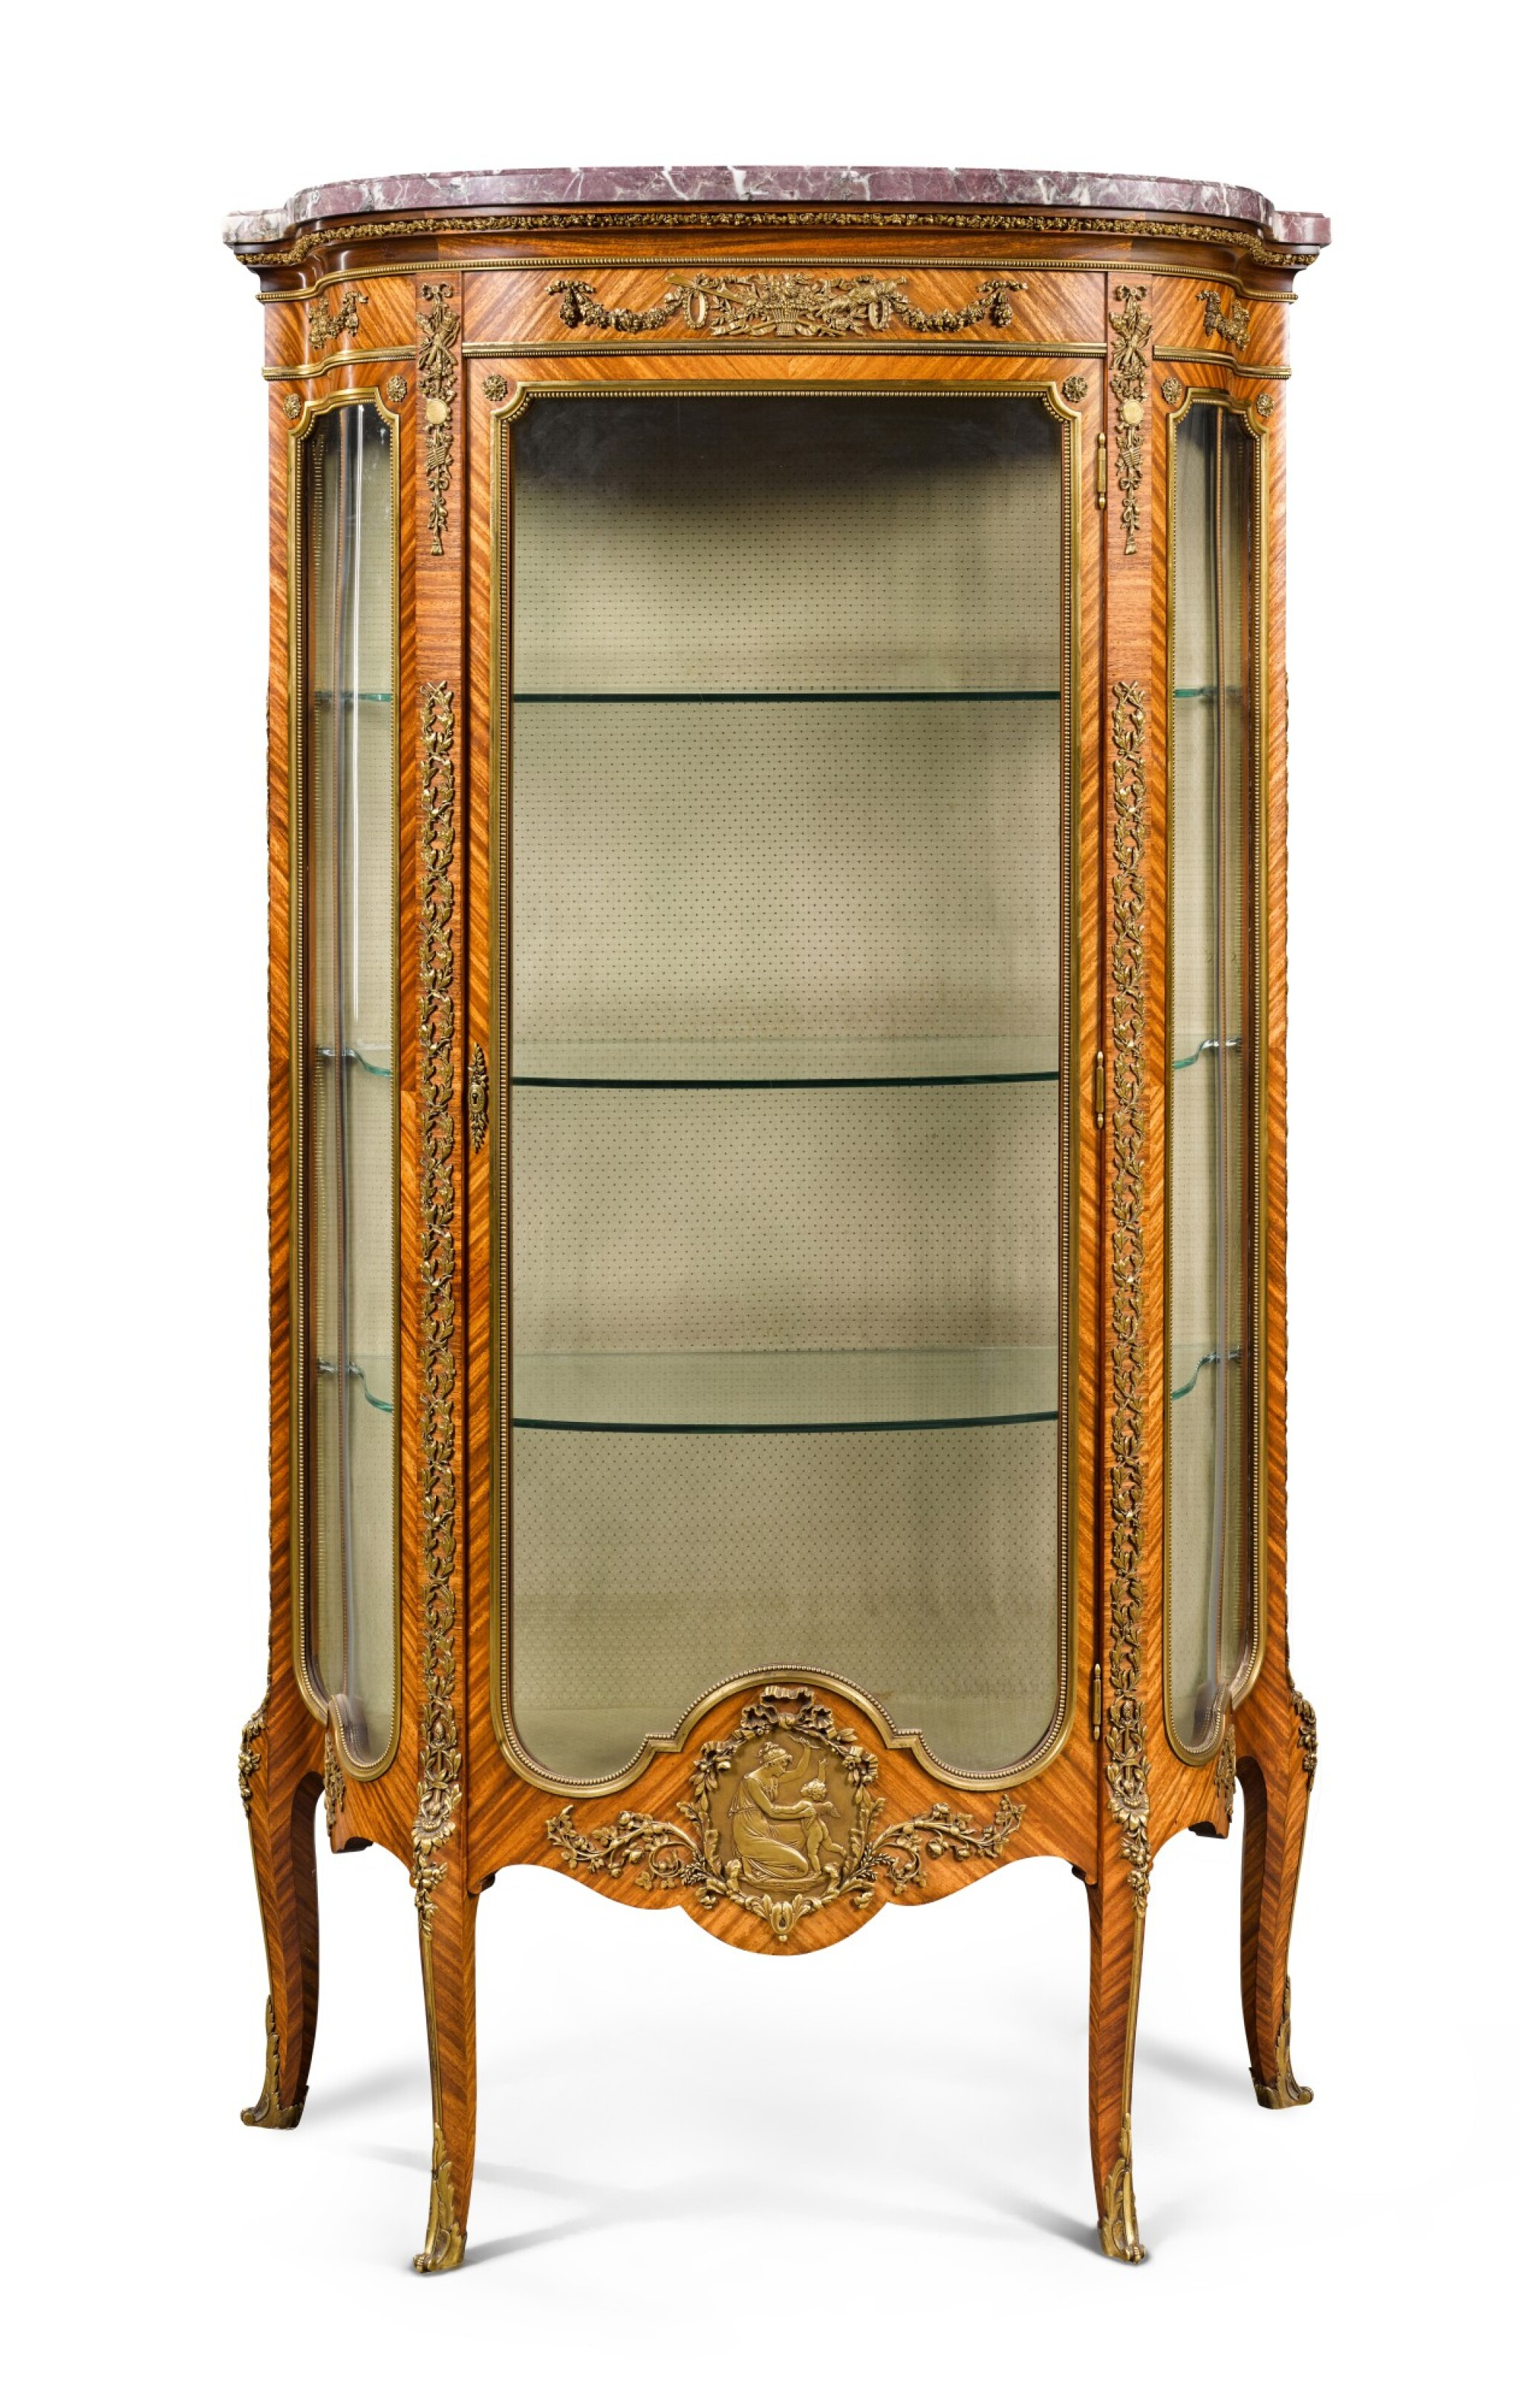 View full screen - View 1 of Lot 17. A FRENCH GILT-BRONZE MOUNTED TULIPWOOD VITRINE, BY FRANÇOIS LINKE, CIRCA 1900.